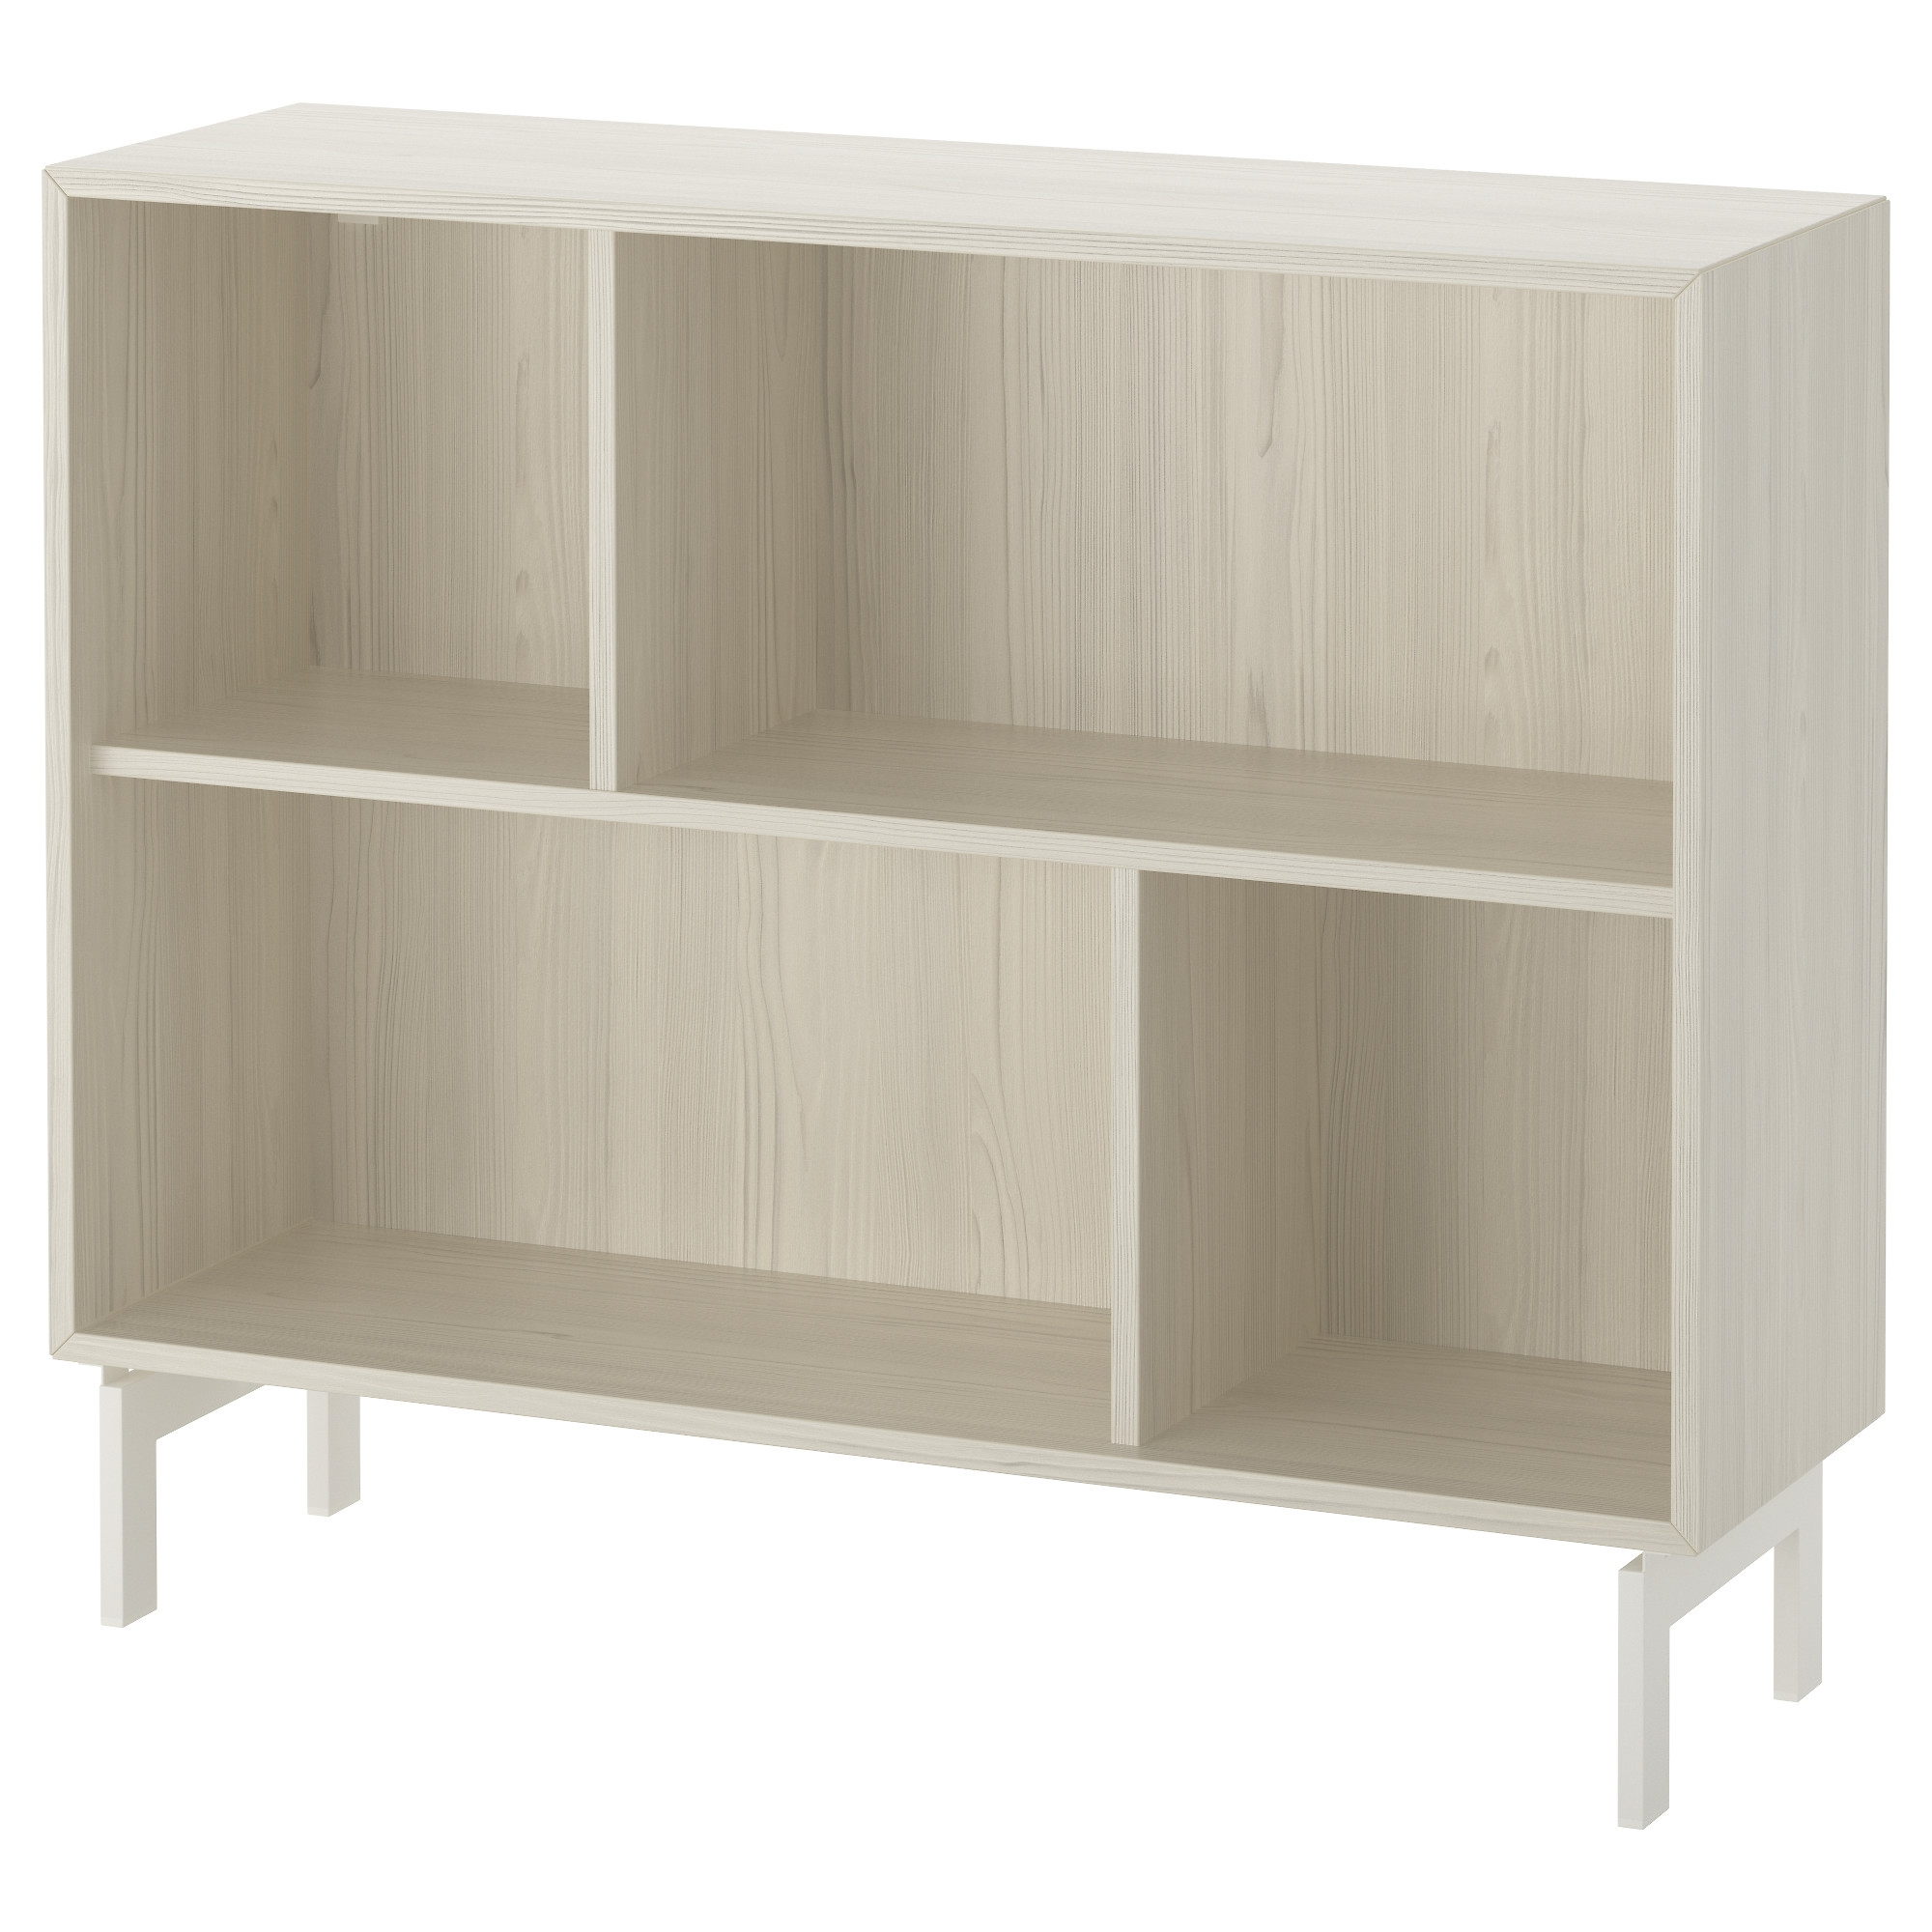 Shelves Shelving Units Ikea For Freestanding Bookcase Wall (View 12 of 15)